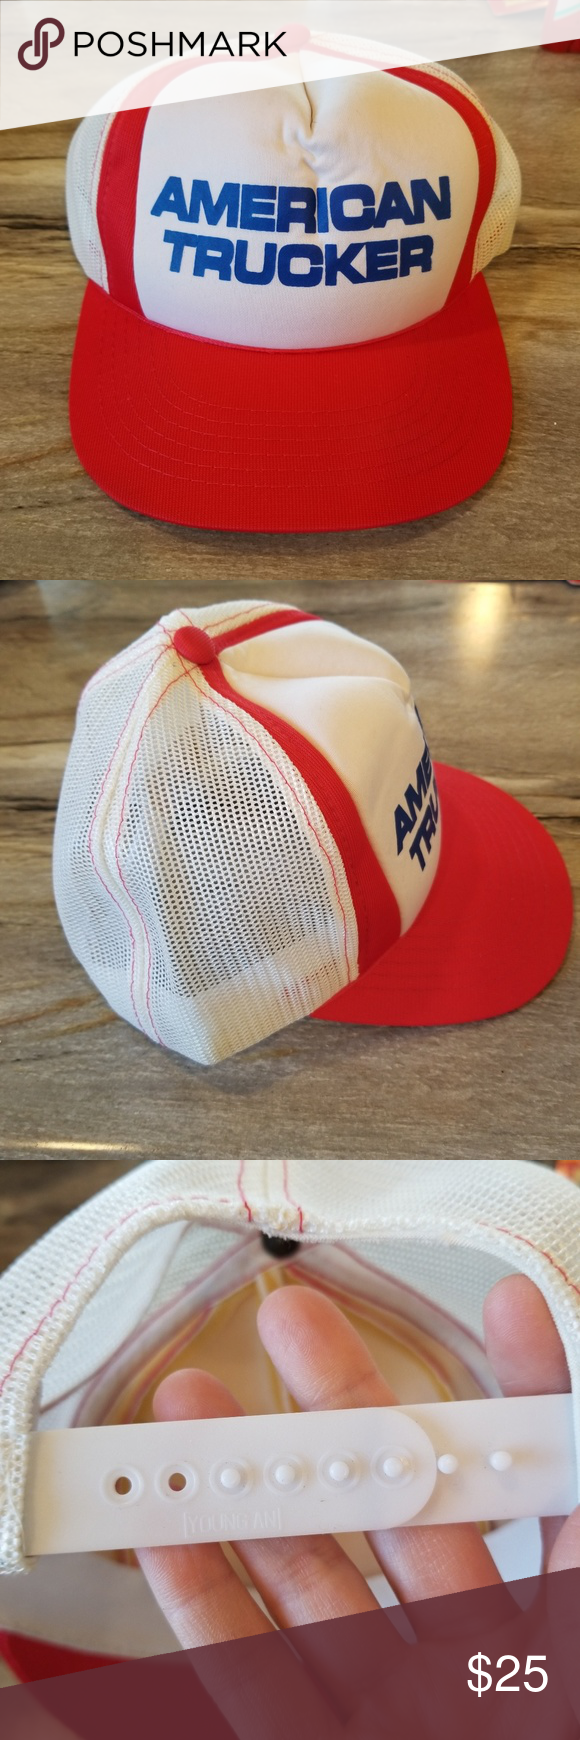 Vtg American Trucker Foam Mesh Snapback White Hat Never Worn Clean Young An Accessories Hats White Hat Hats Trucker